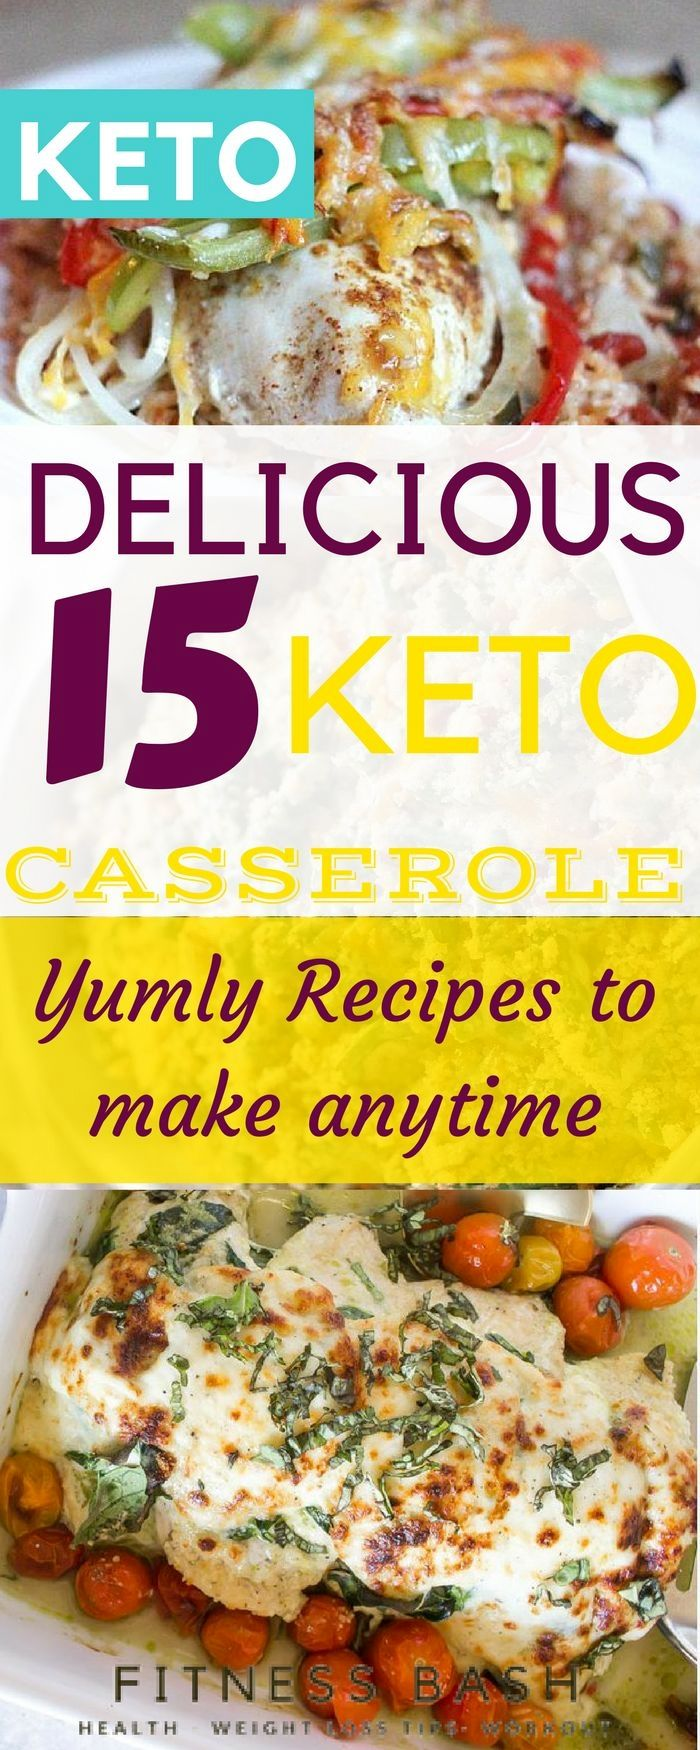 Keto Casserole recipes: Make your life easy with k…